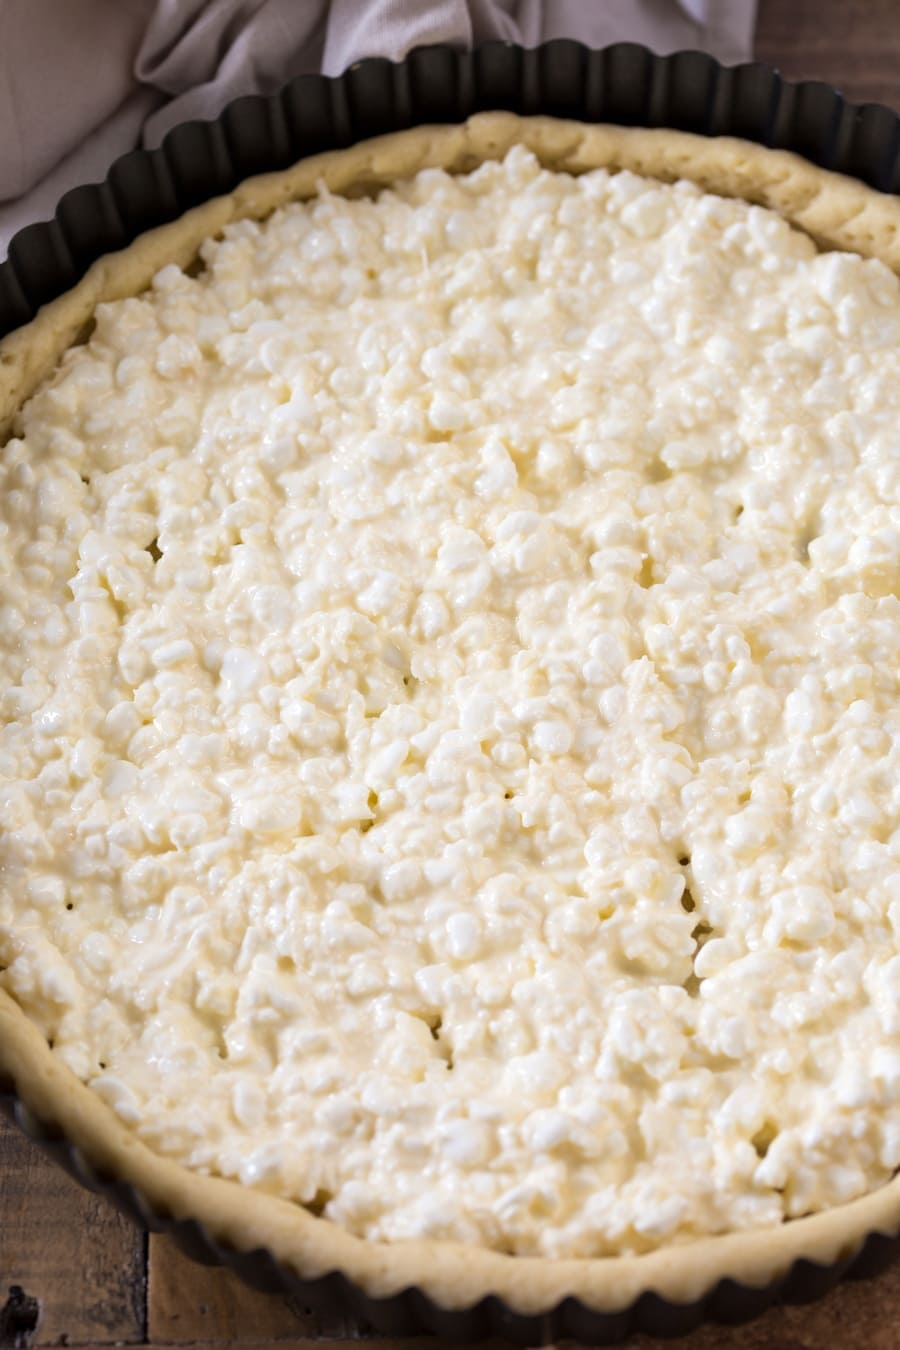 Pie crust filled with cottage cheese mixture.